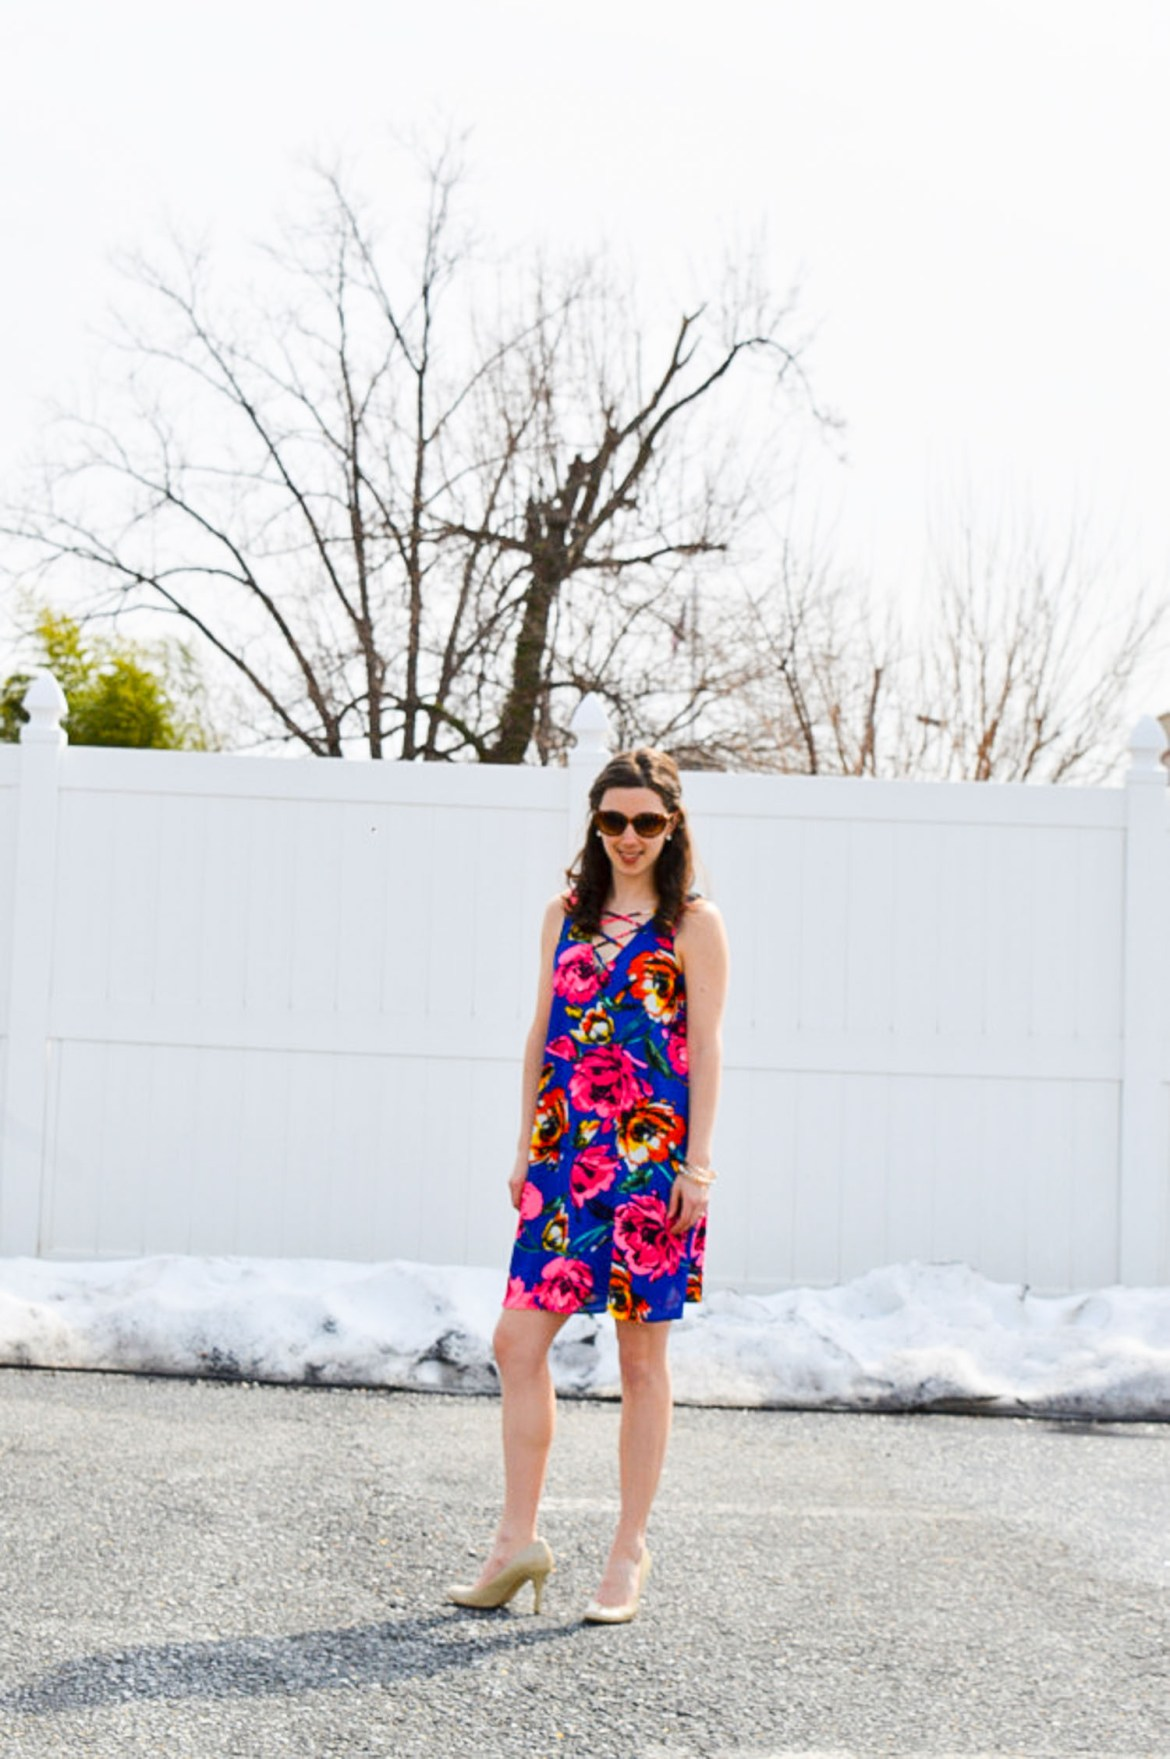 sundresses and snow - the joys of March